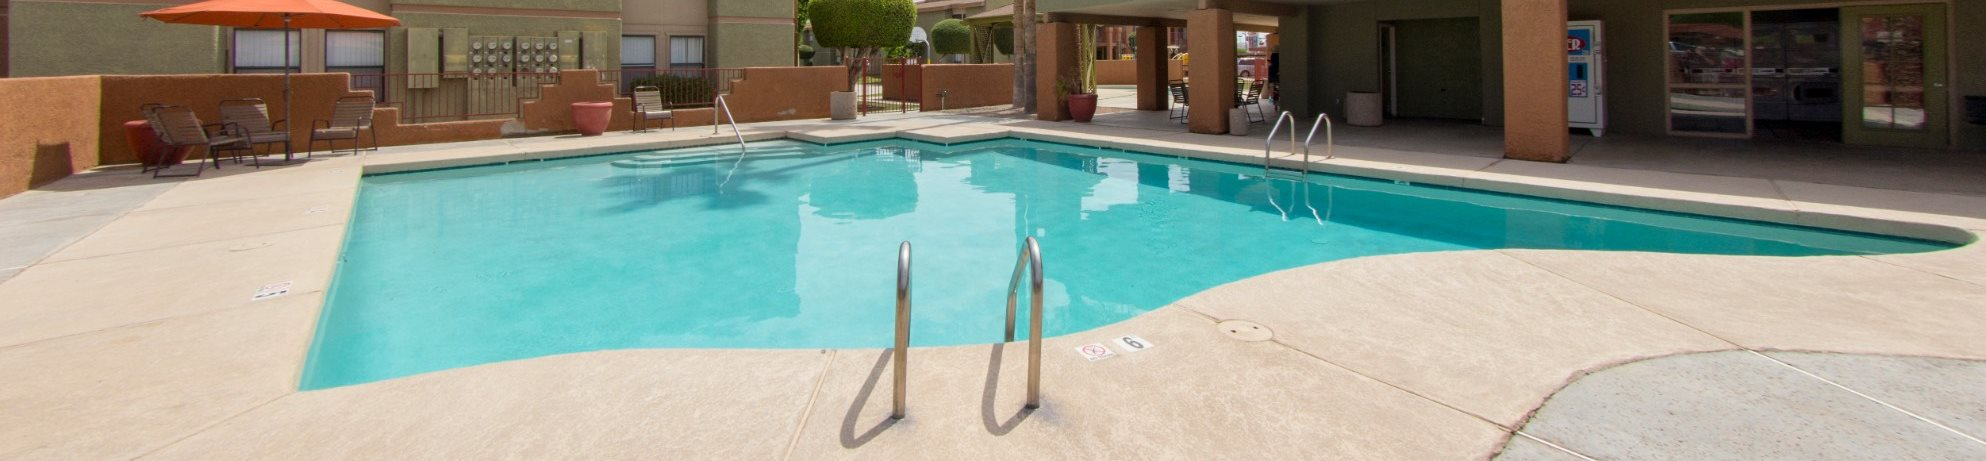 Pool & pool patio at Avenue 8 Apartments in Mesa, AZ